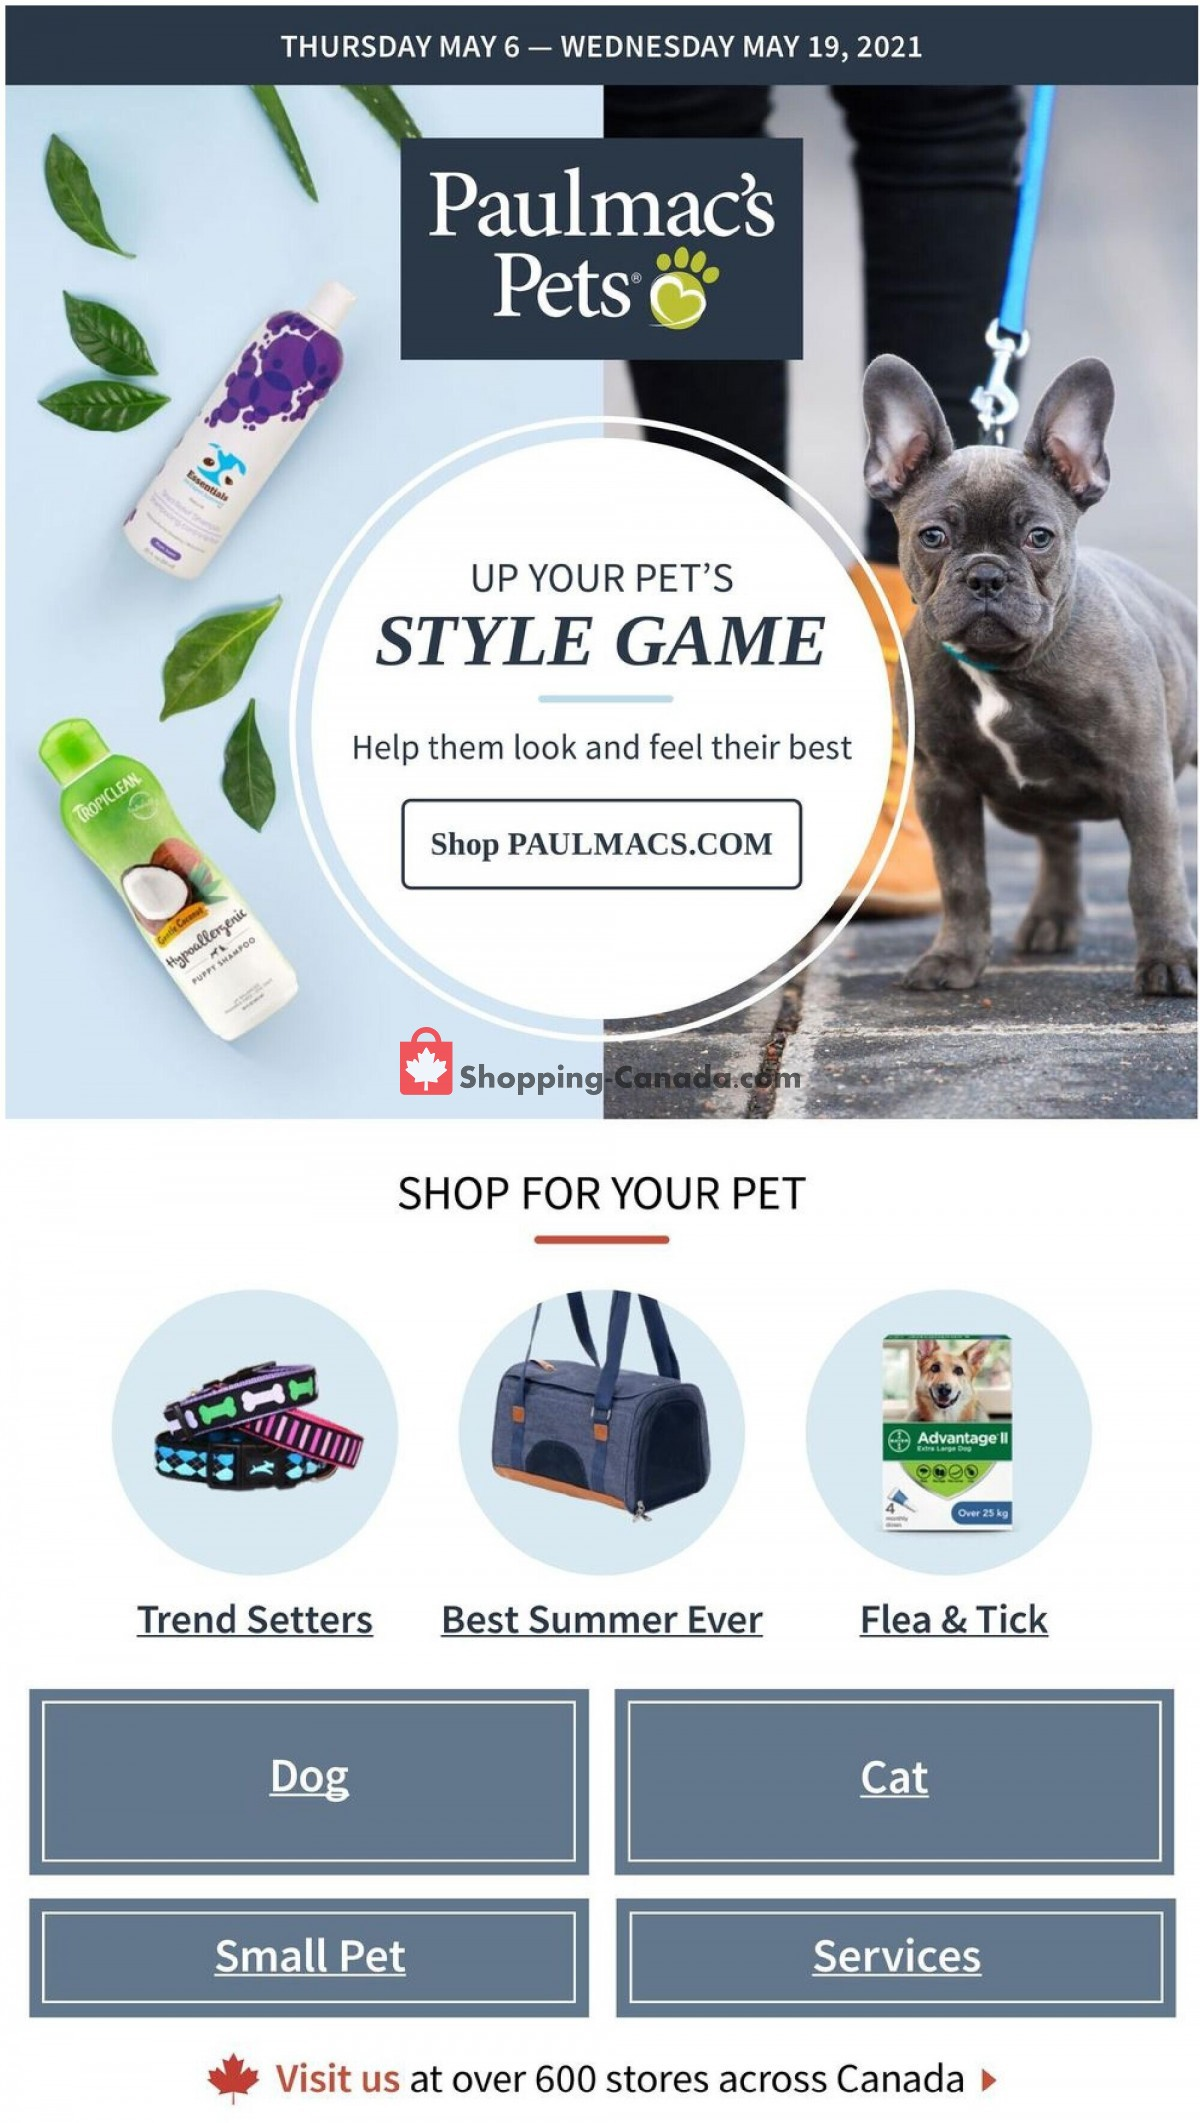 Flyer Paulmac's Pets Canada - from Thursday May 6, 2021 to Wednesday May 19, 2021